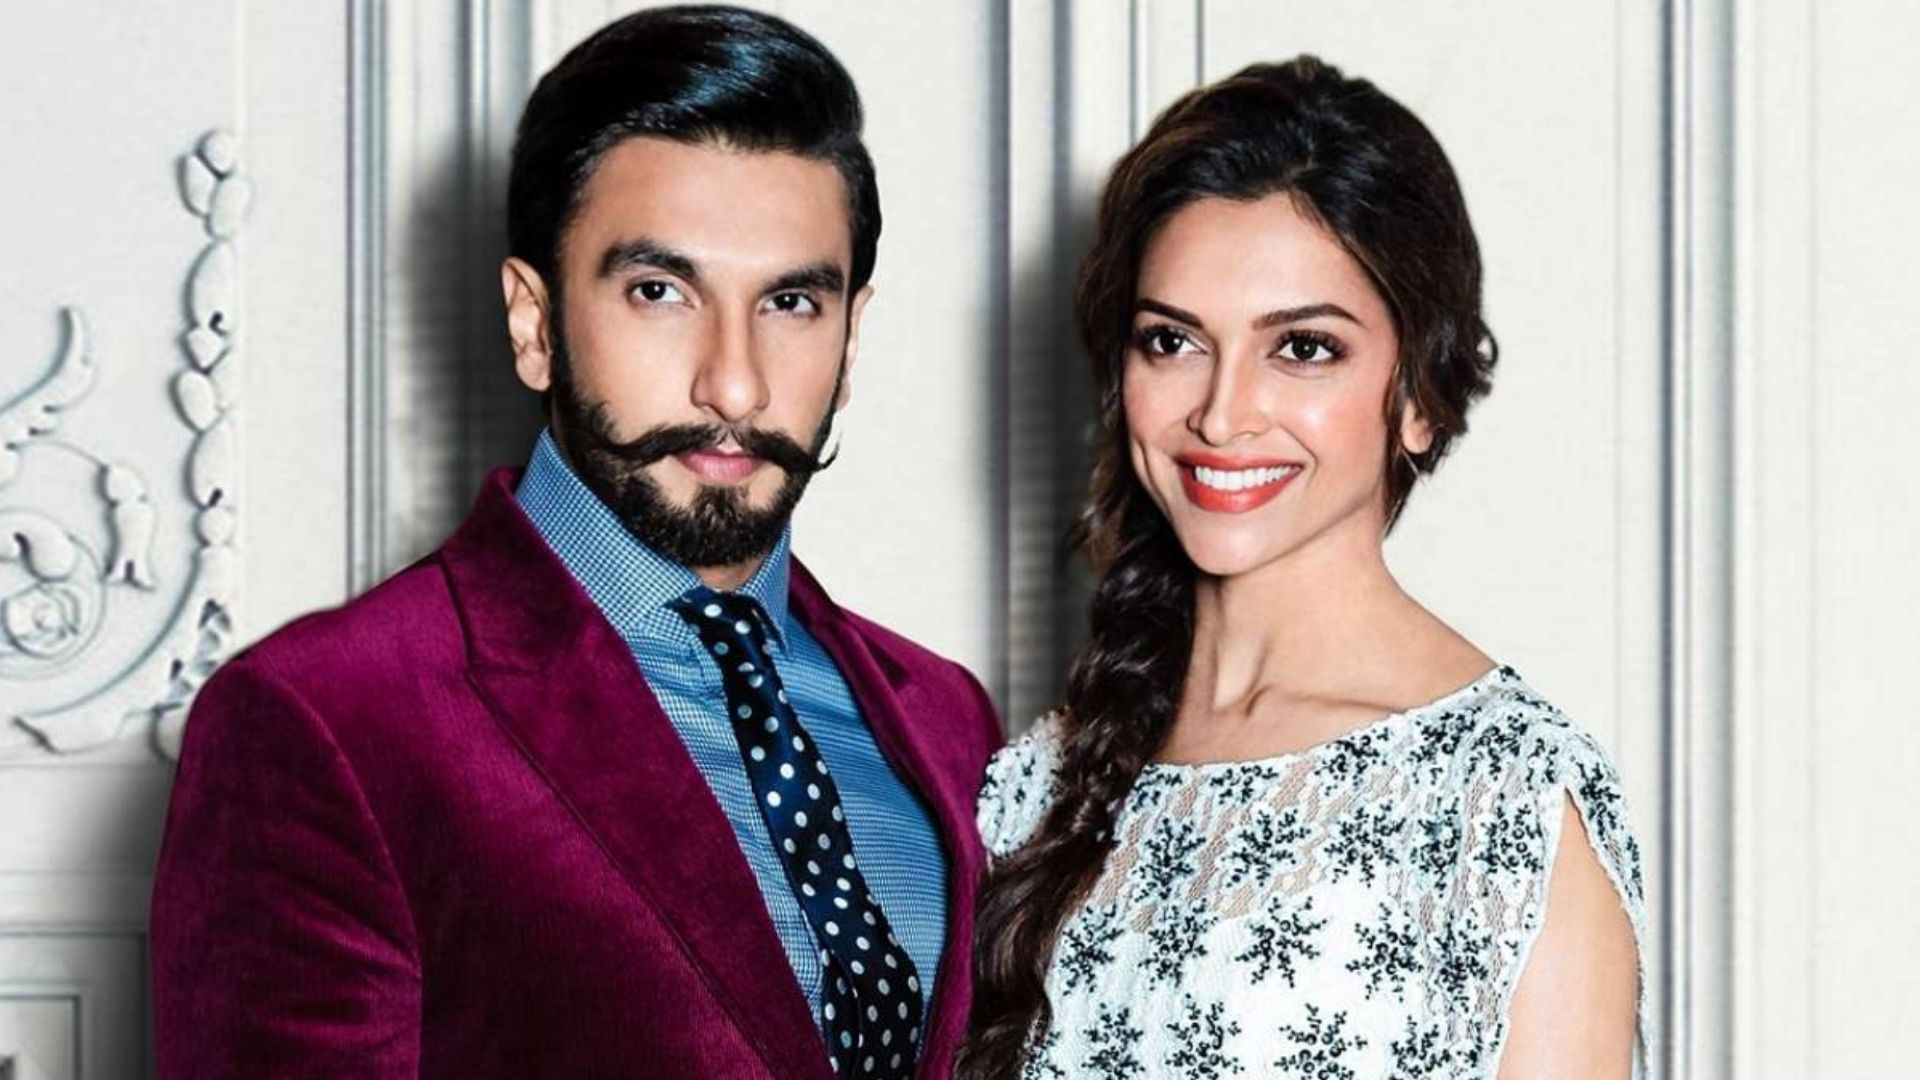 Ranveer Singh Misses Wifey Deepika Padukone After Listening To A Love Song; Actor Reveals Her Reaction To His TV Debut Show